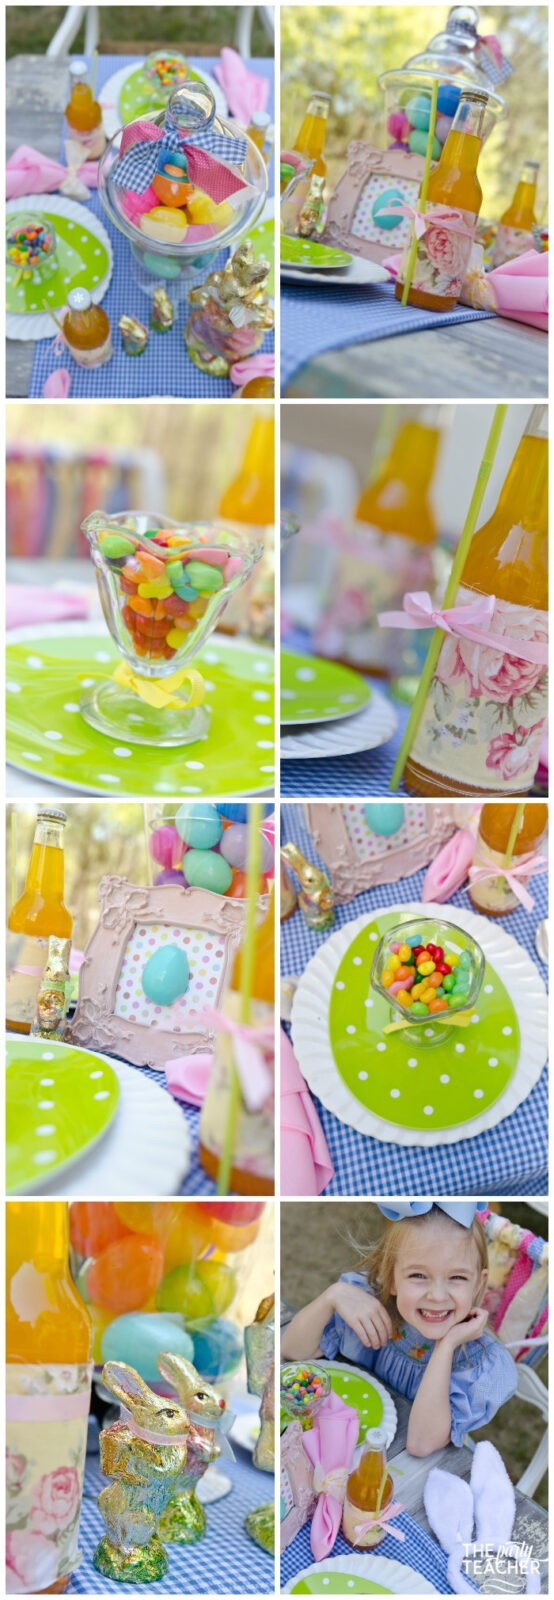 Shabby Chic Easter Party dining table-4 by The Party Teacher